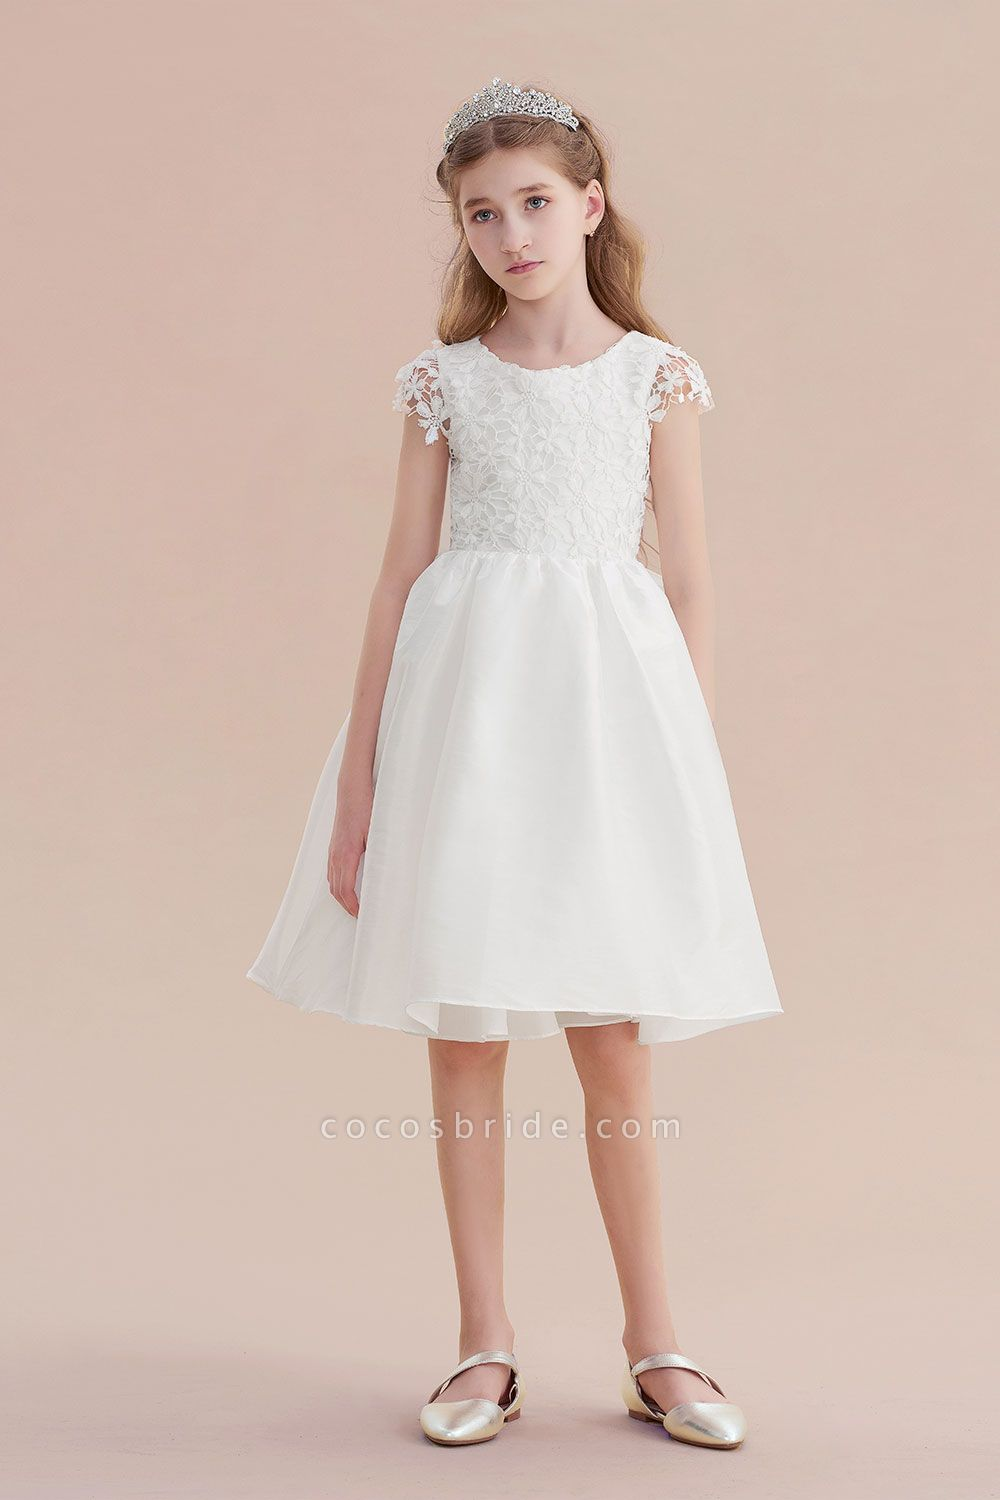 Cap Sleeve Lace Bow A-line Flower Girl Dress